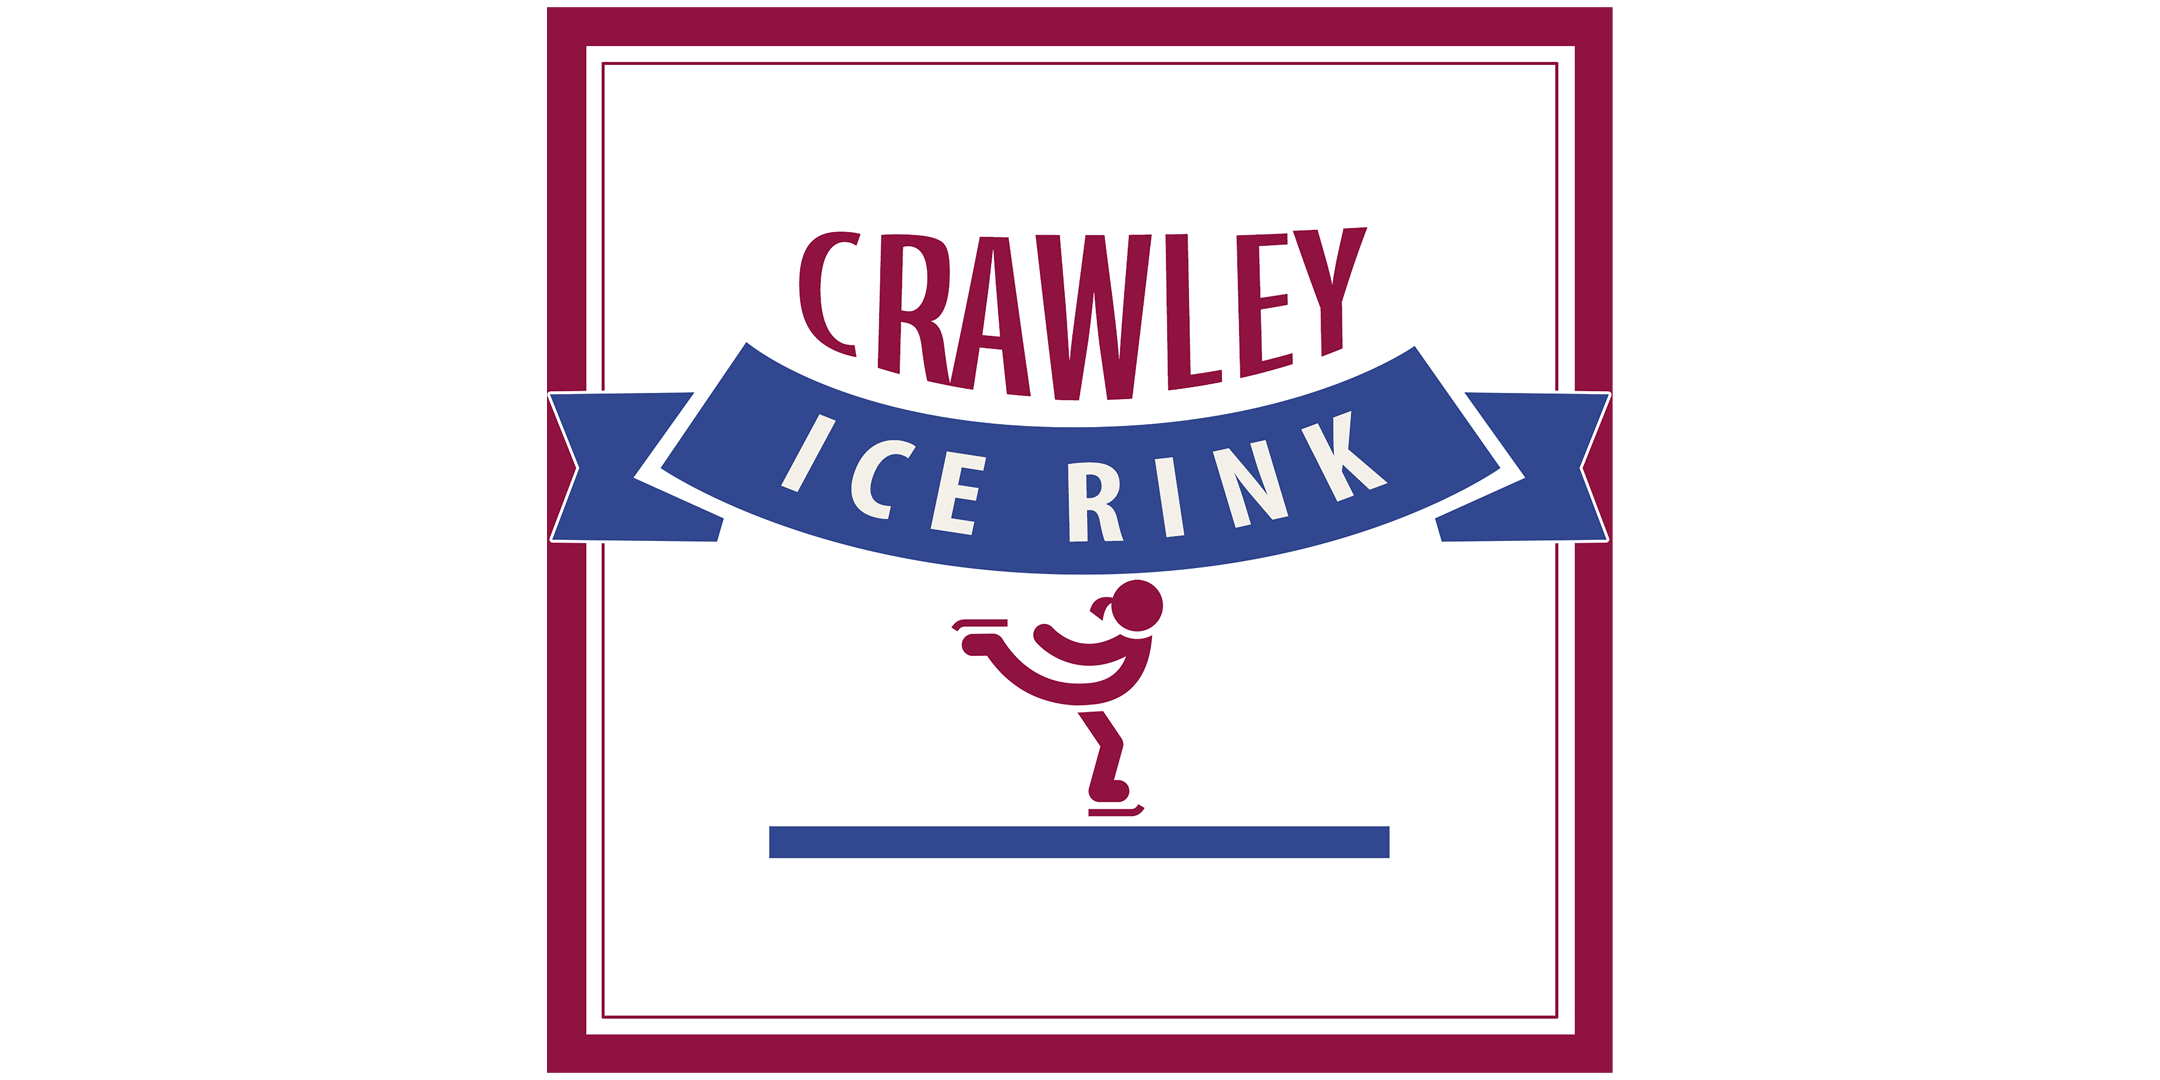 Crawley Ice Rink - 2nd January (Peak)